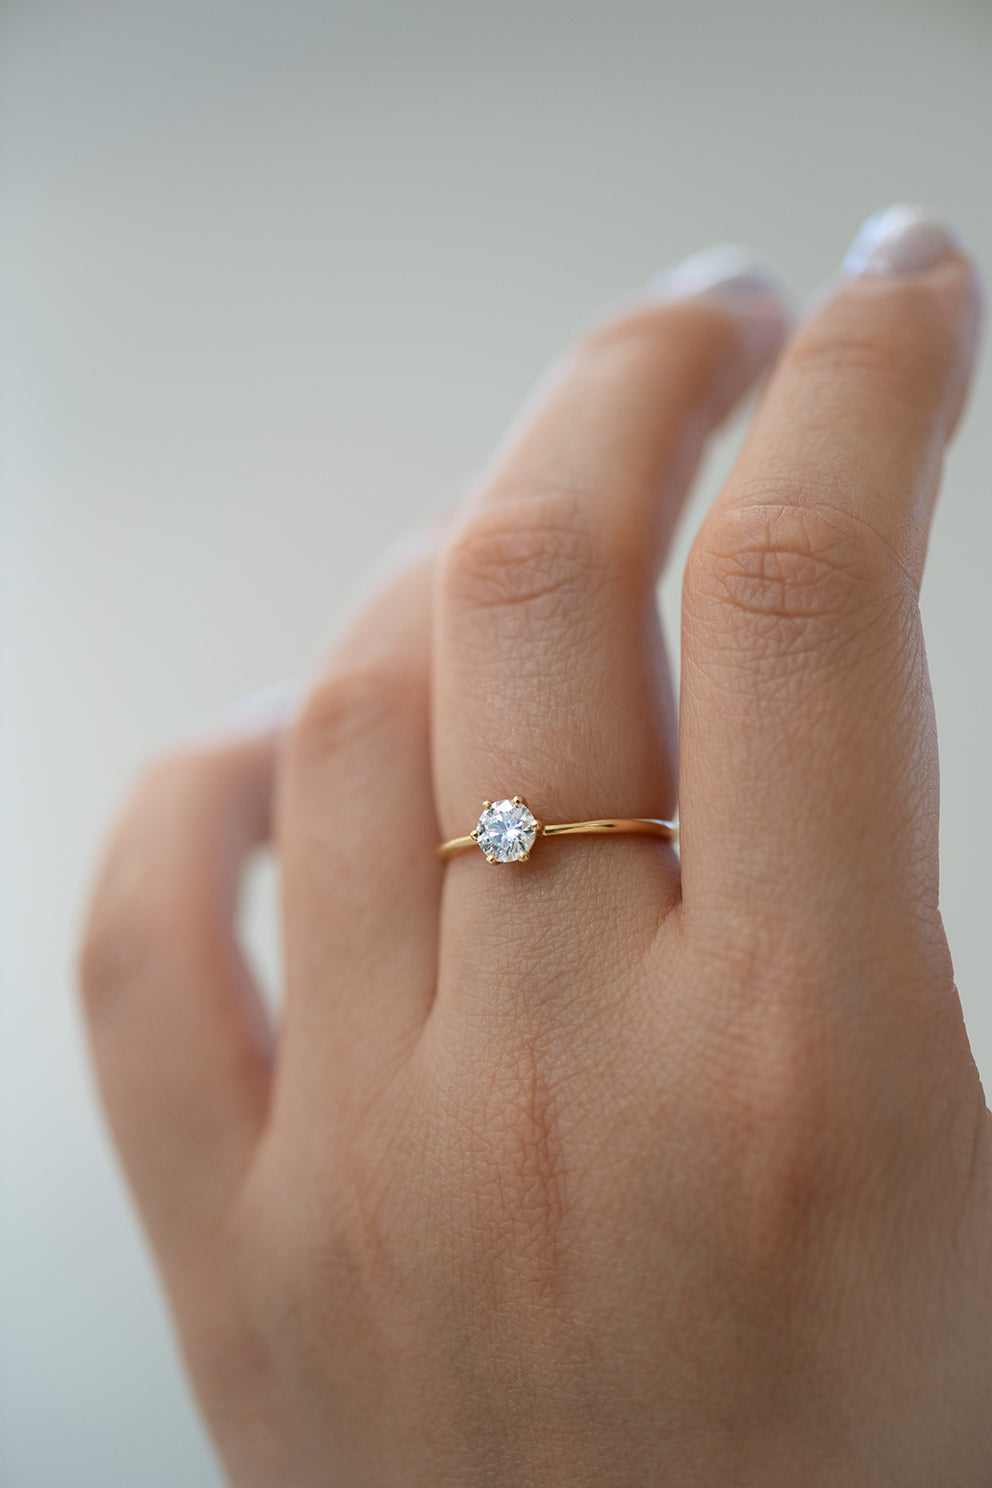 Solitaire Engagement Ring - Minimalist Diamond Ring Up Close on Hand